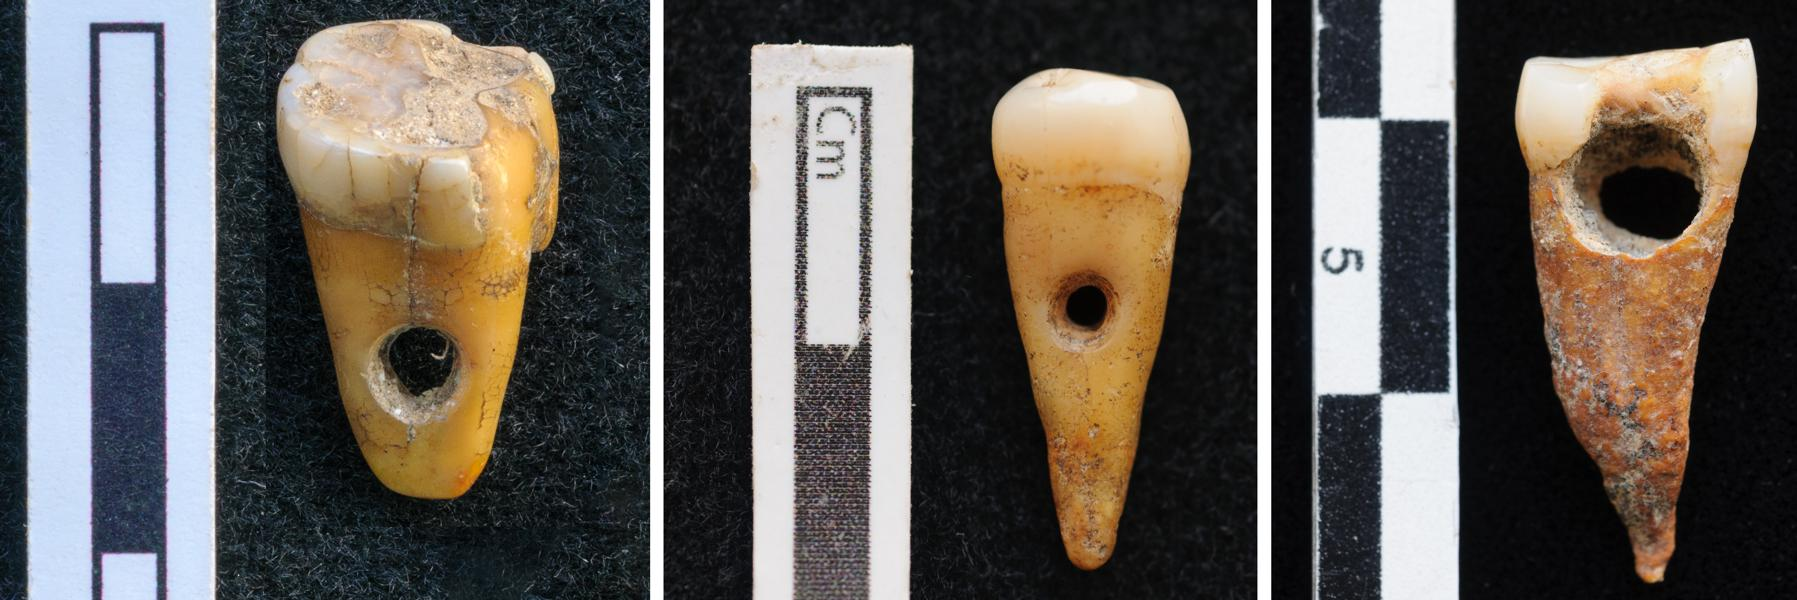 Human Tooth Jewelry Discovered At Neolithic Site In Turkey